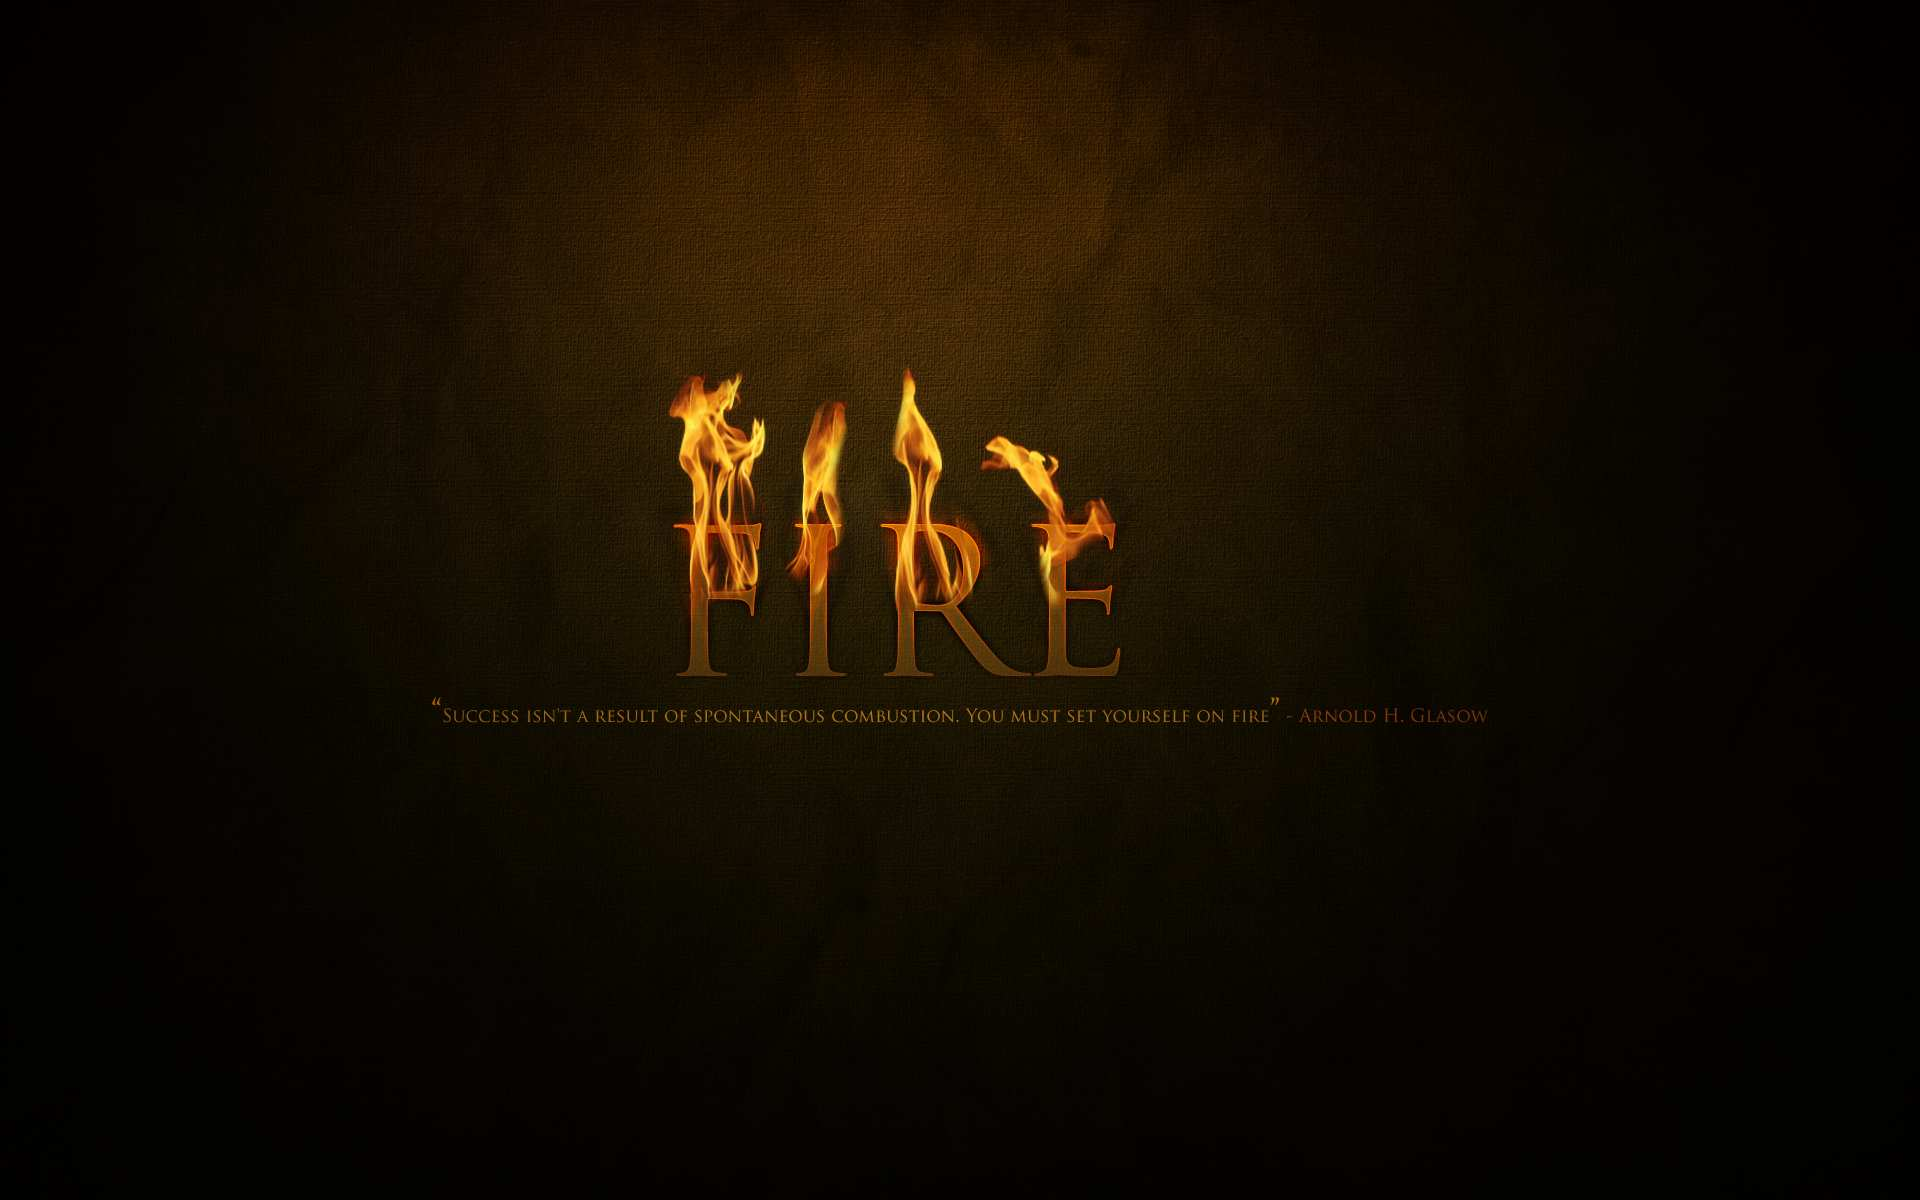 fire wallpaper quotes